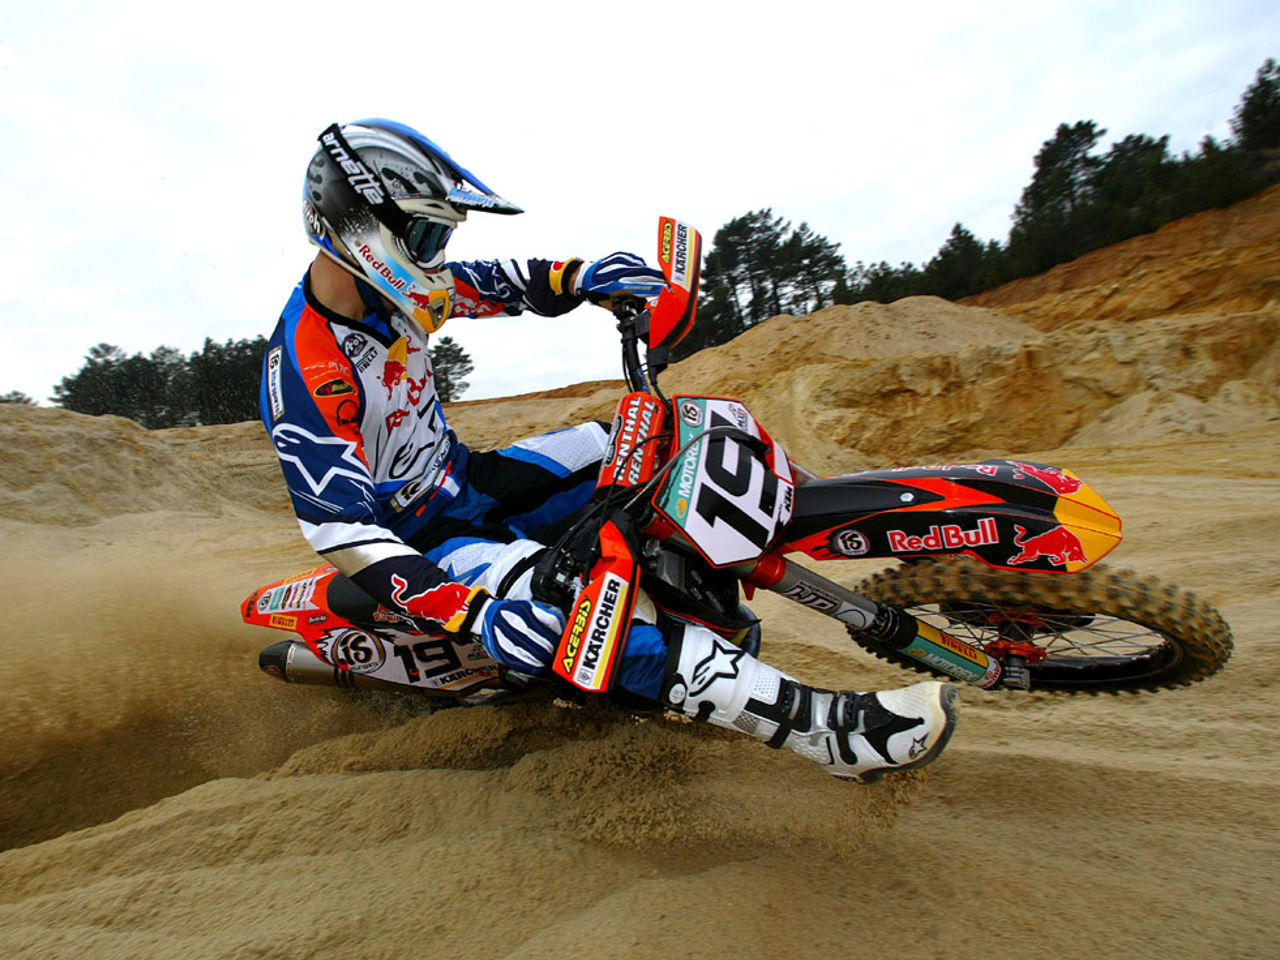 Motocross wallpaper free hd wallpapers page 0 wallpaperlepi - Dirt Bike Racing 6899 Hd Wallpapers In Bikes Imagesci Com